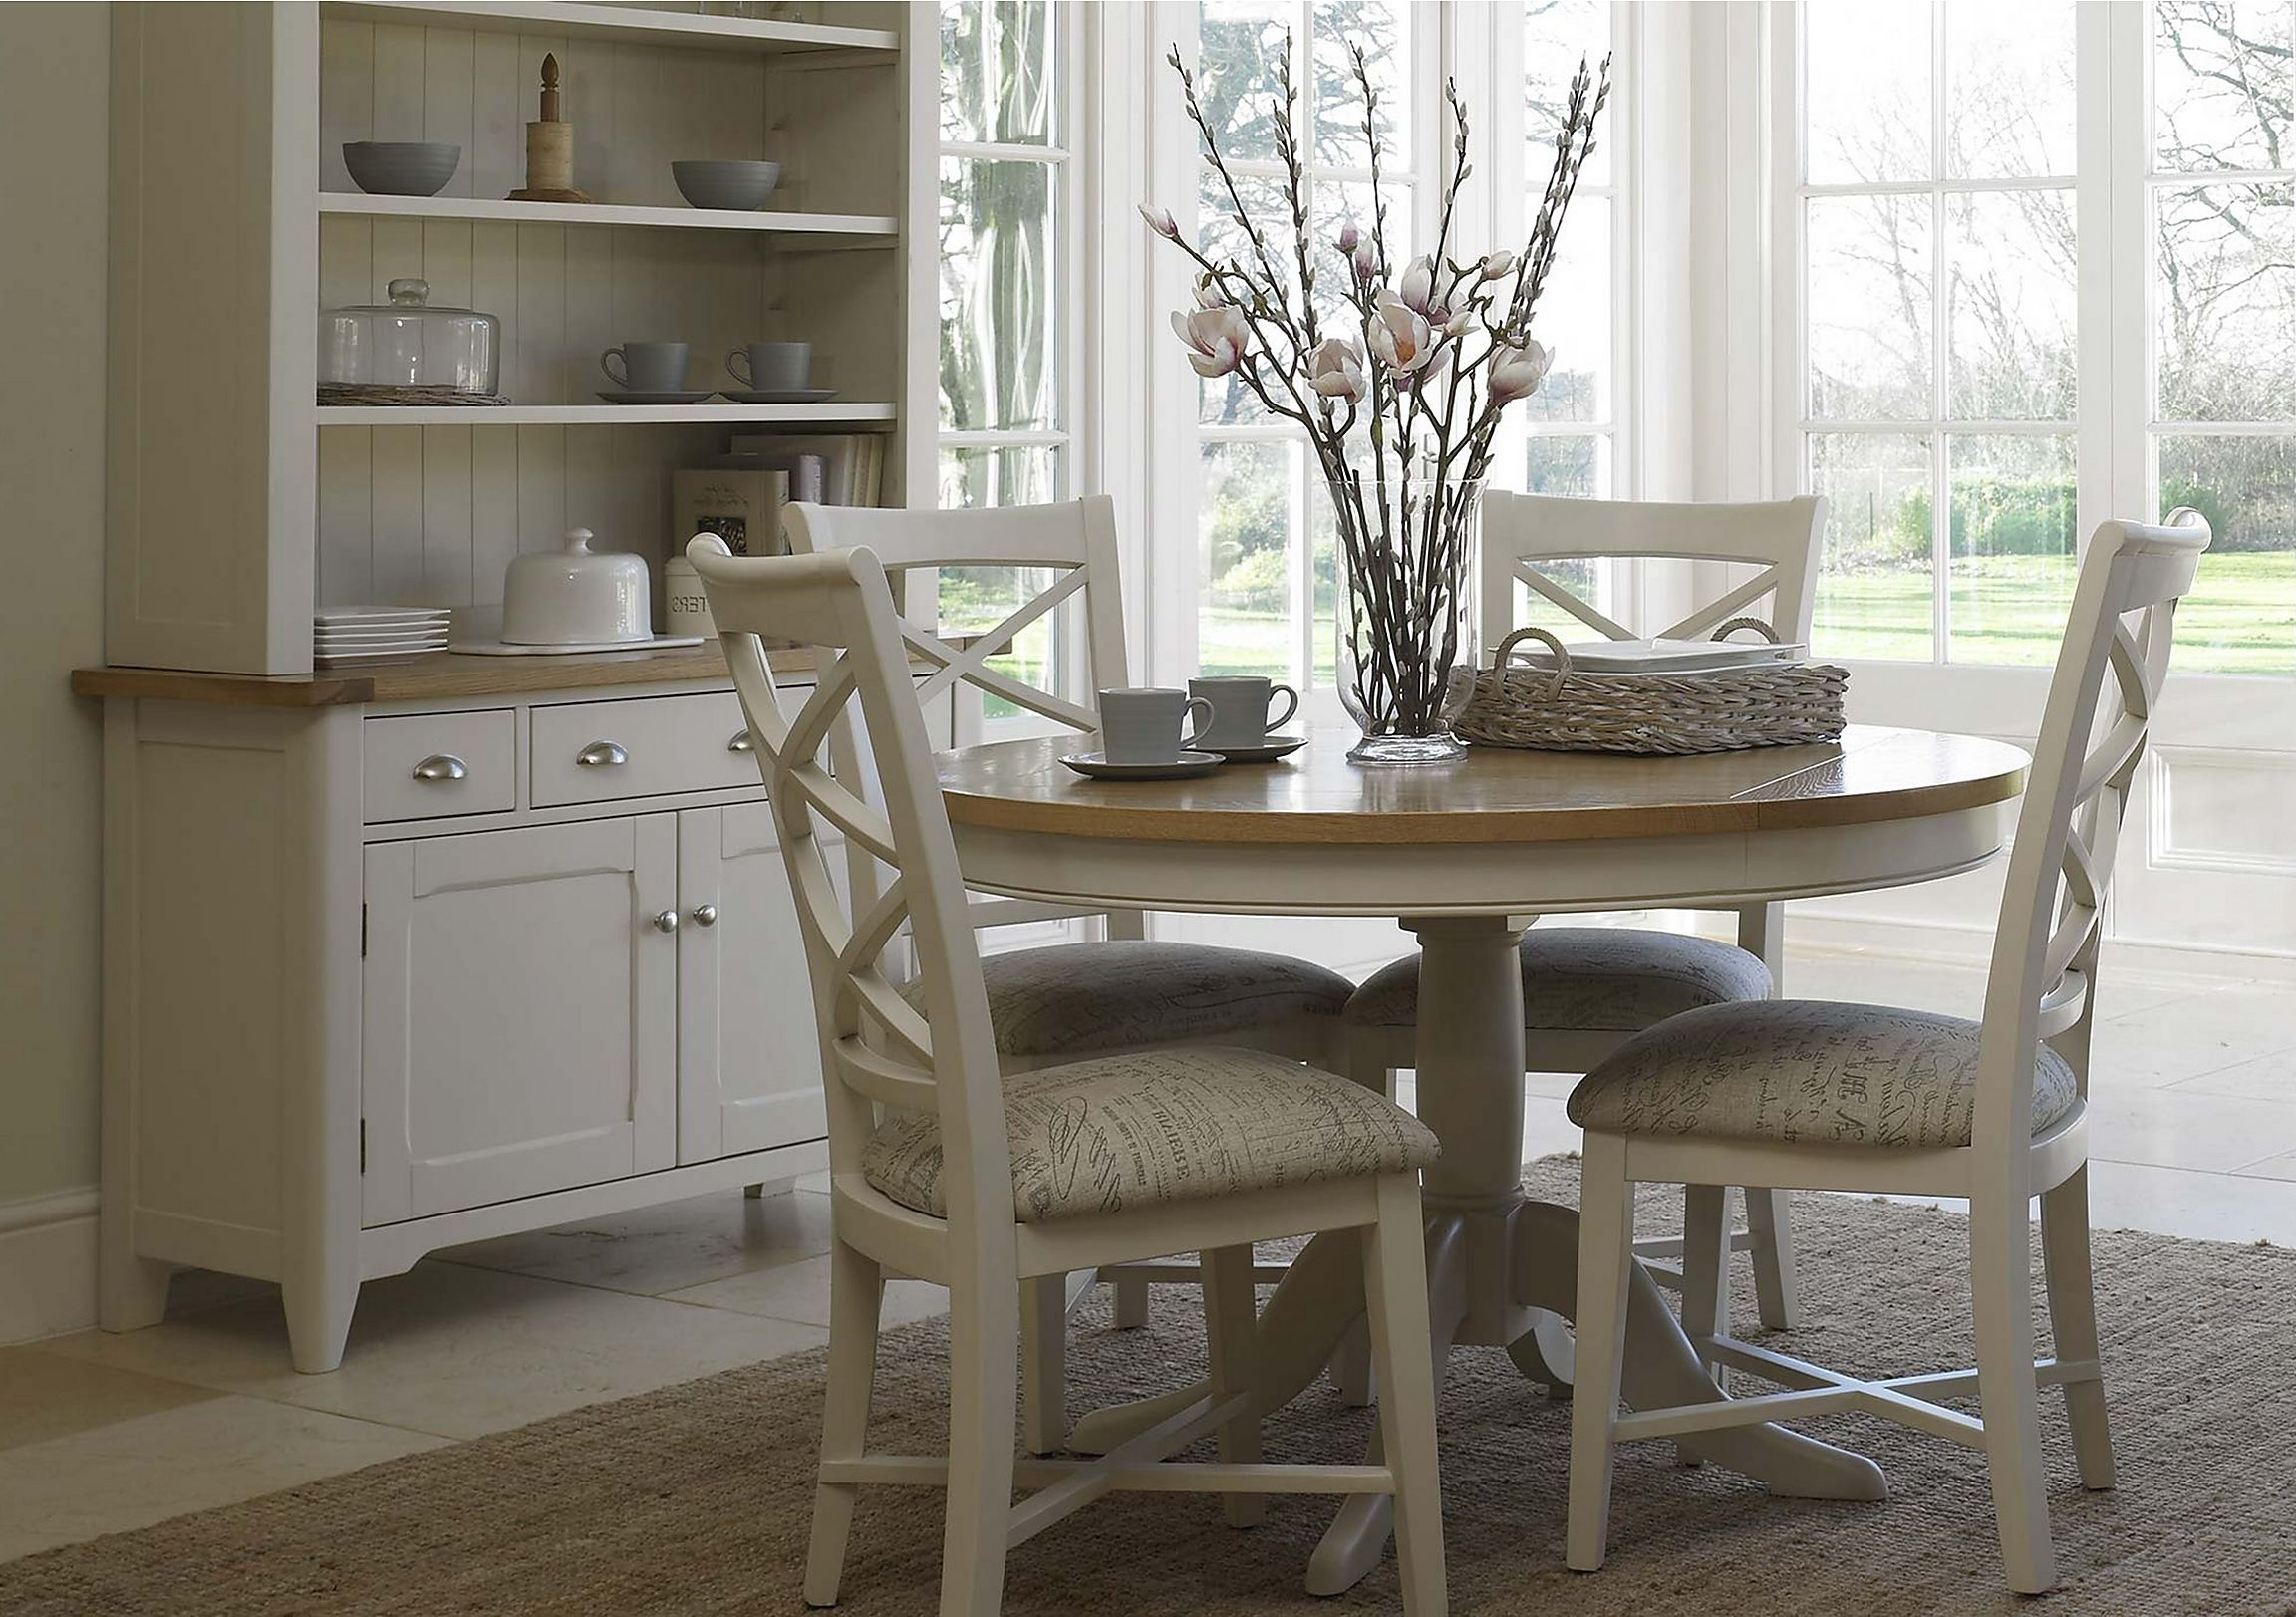 Donato 4 Seater Dining Table Throughout Popular Small 4 Seater Dining Tables (View 6 of 25)